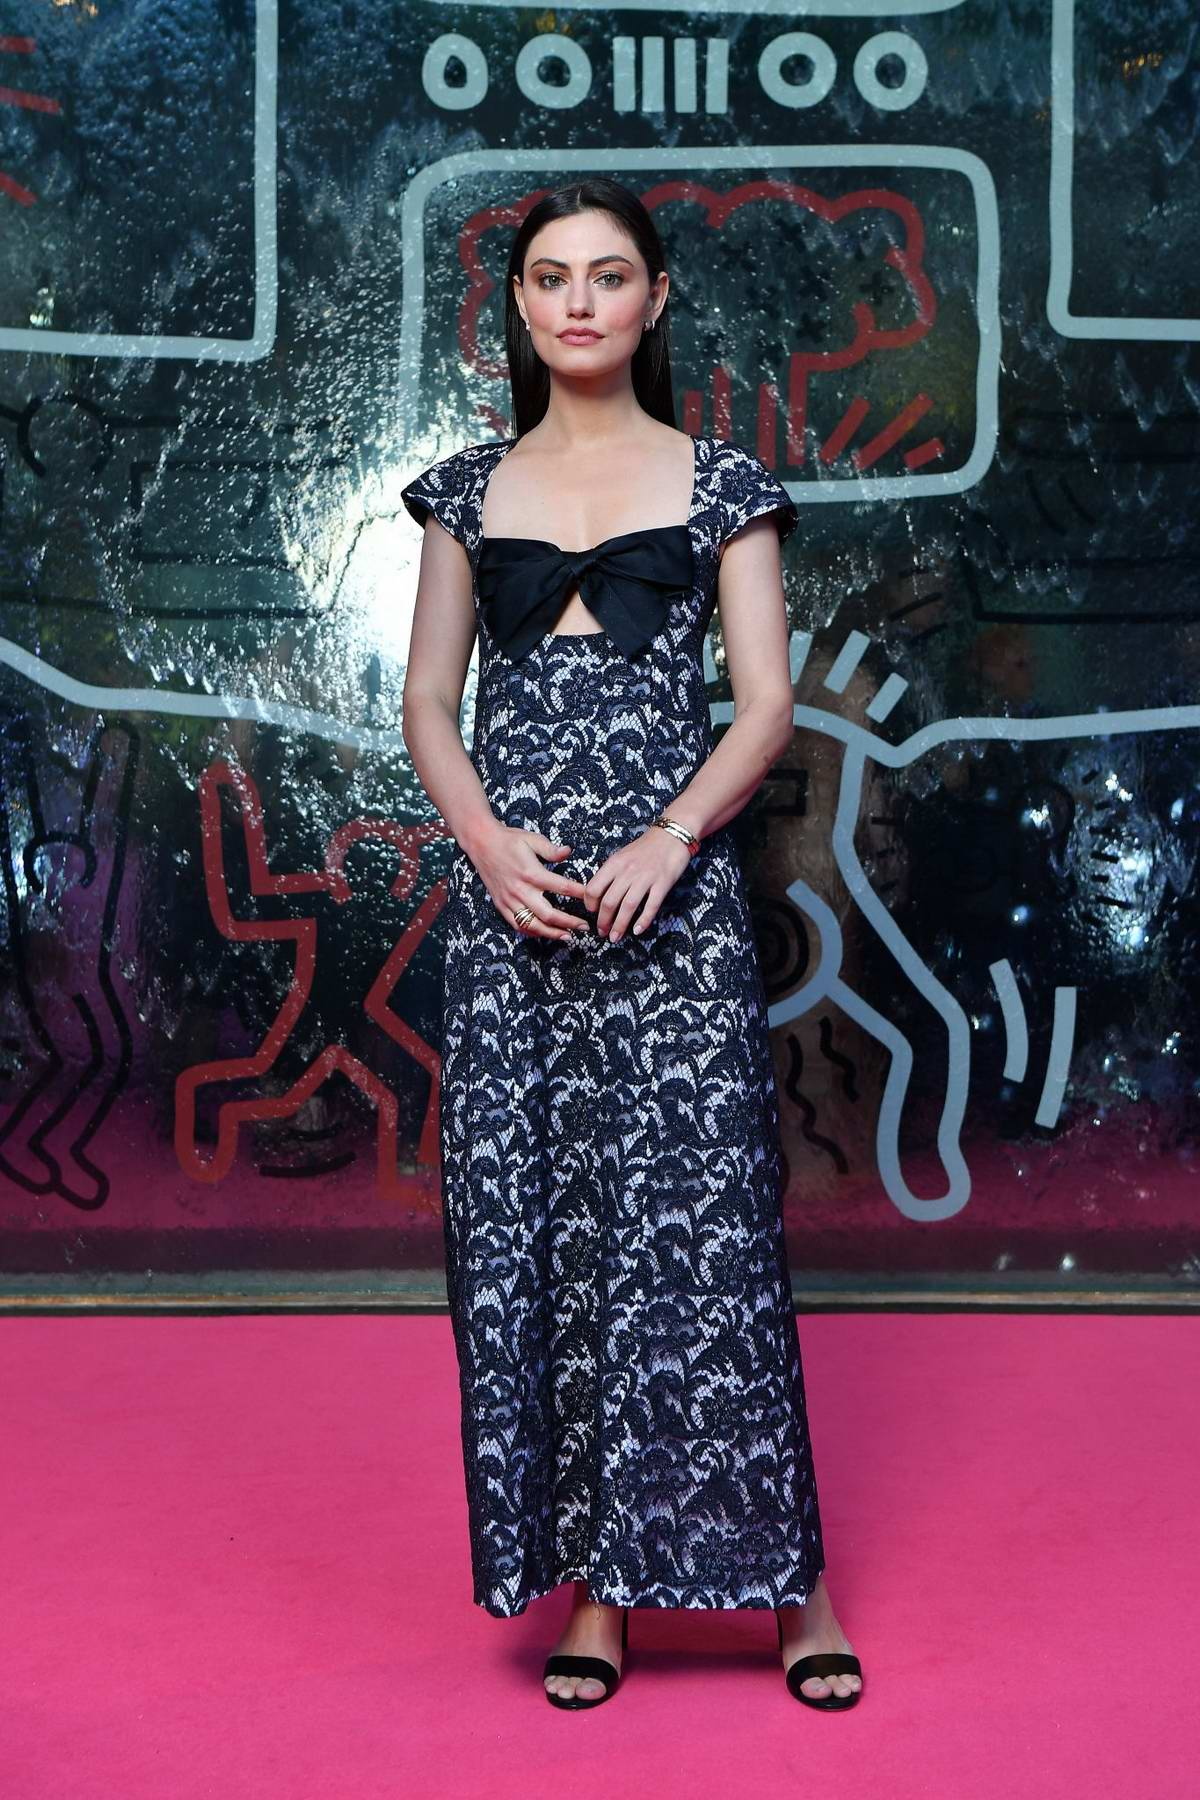 Phoebe Tonkin attends the NGV Gala in Melbourne, Australia